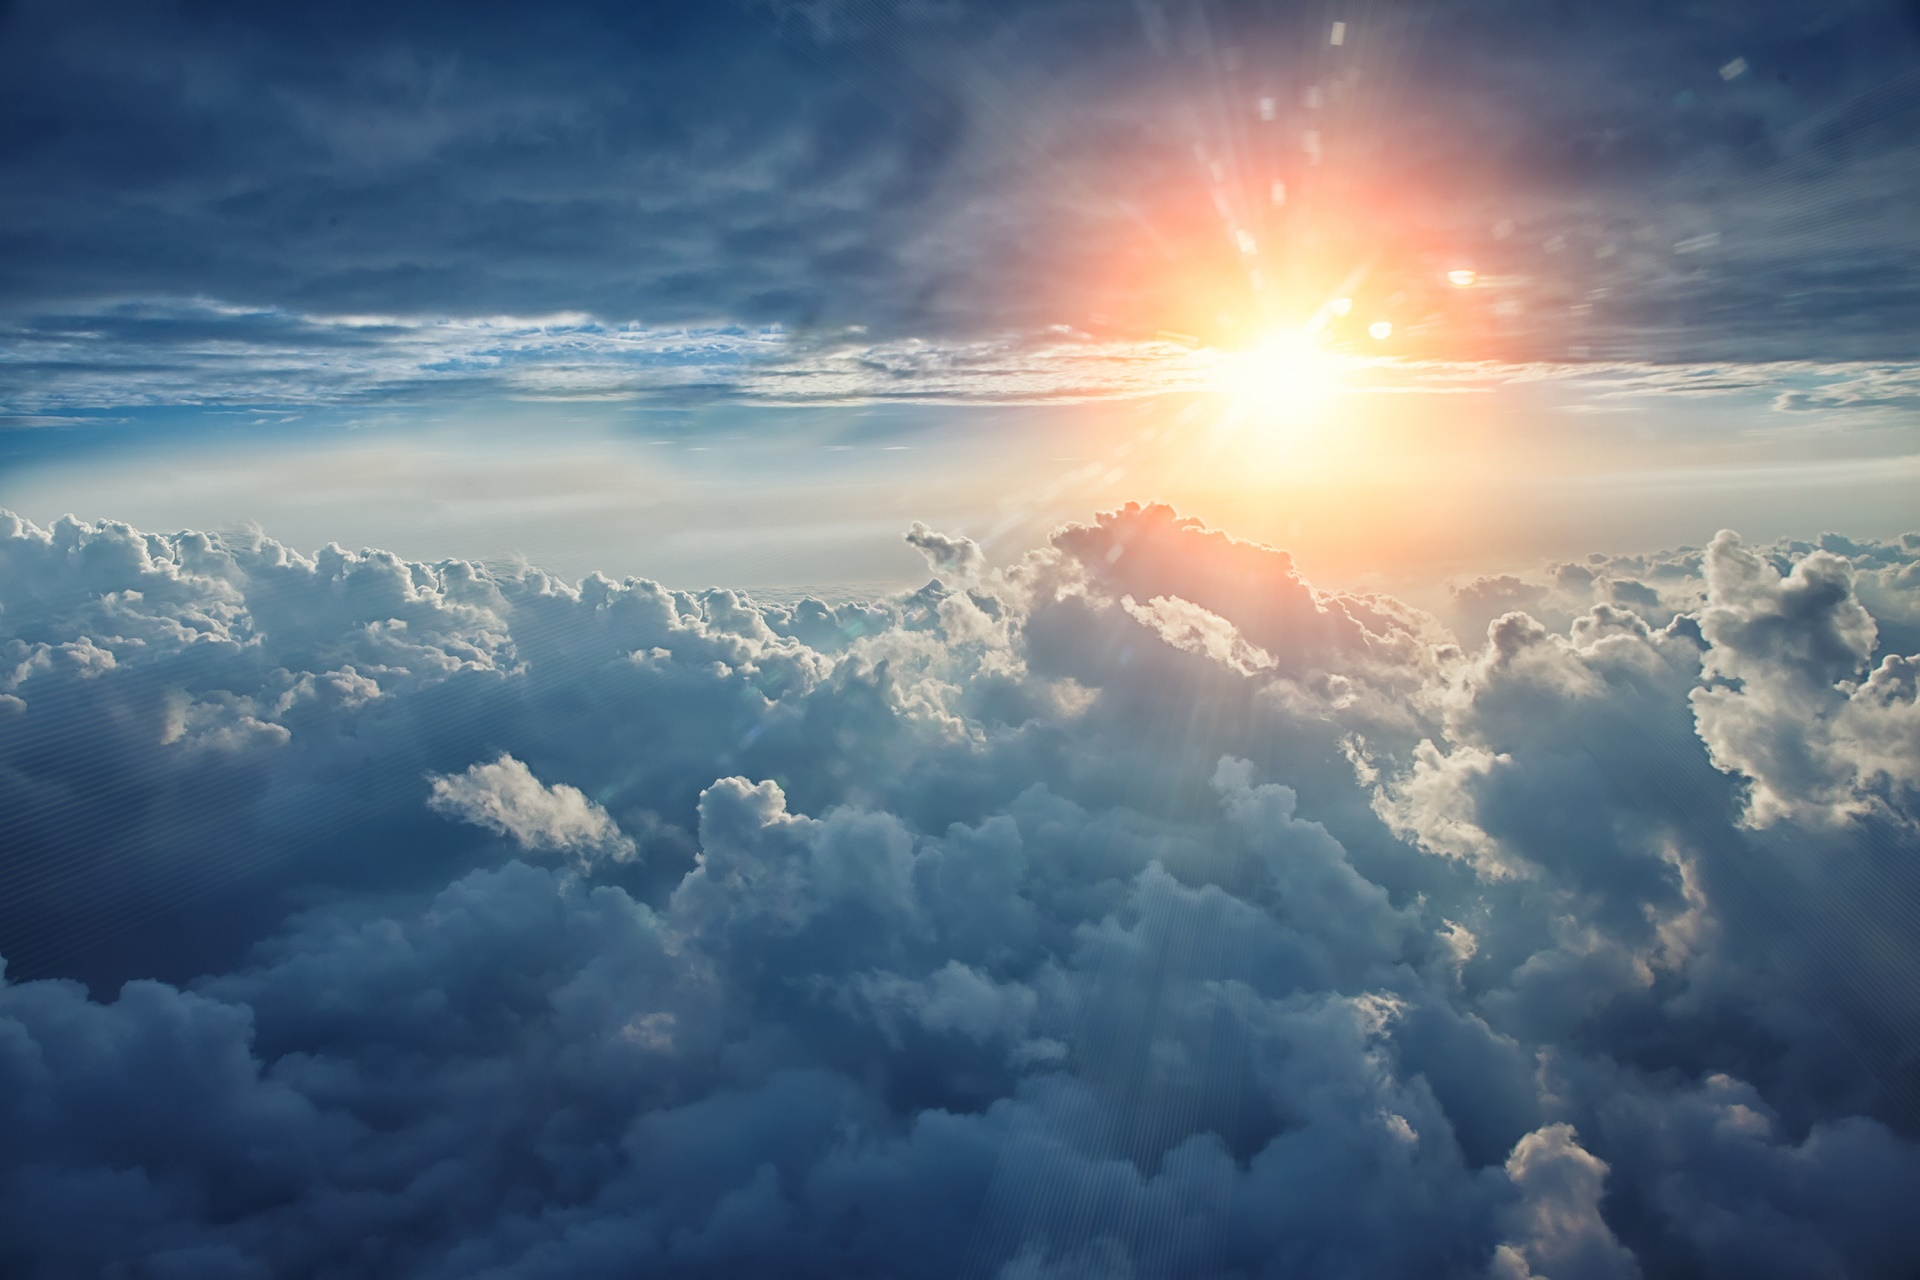 Cloud HD Wallpaper | Background Image | 1920x1280 | ID:720202 - Wallpaper Abyss